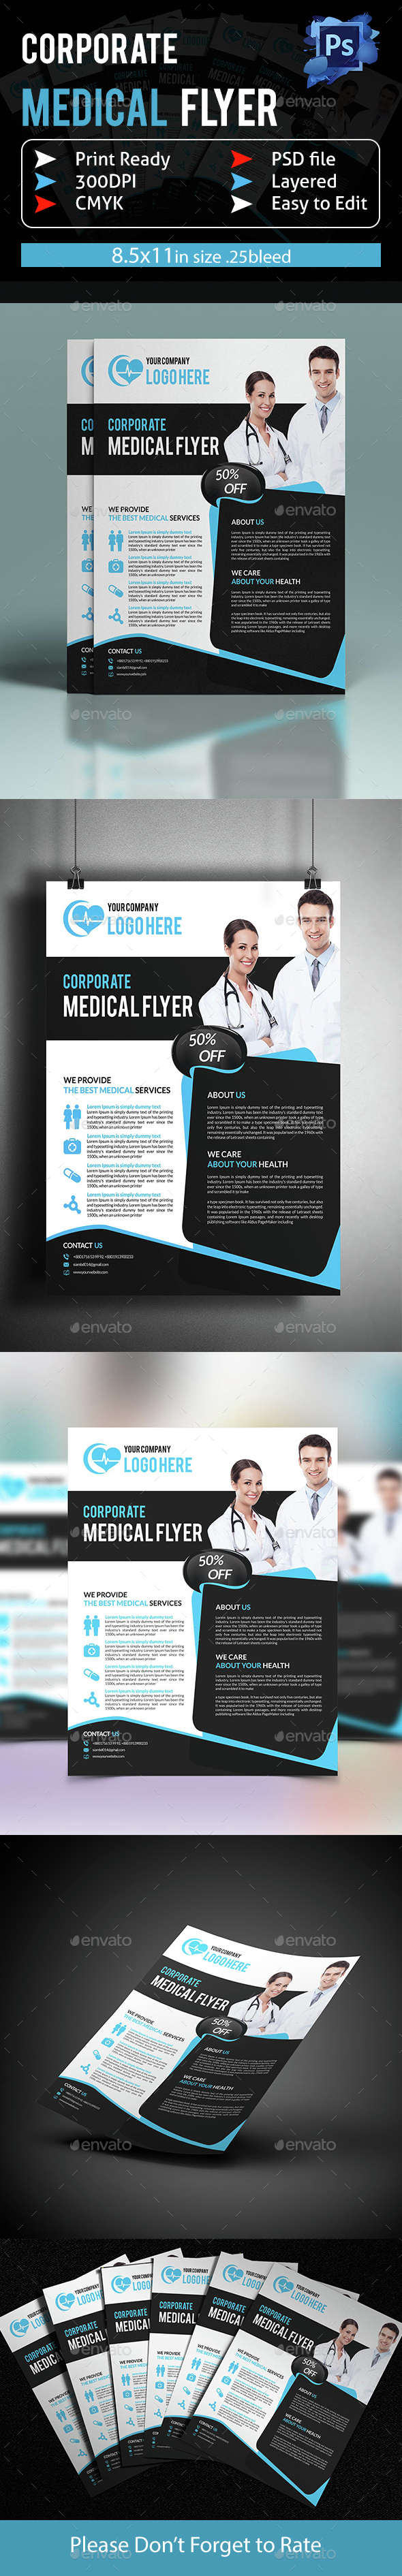 Corporate Medical Flyer - Corporate Flyers